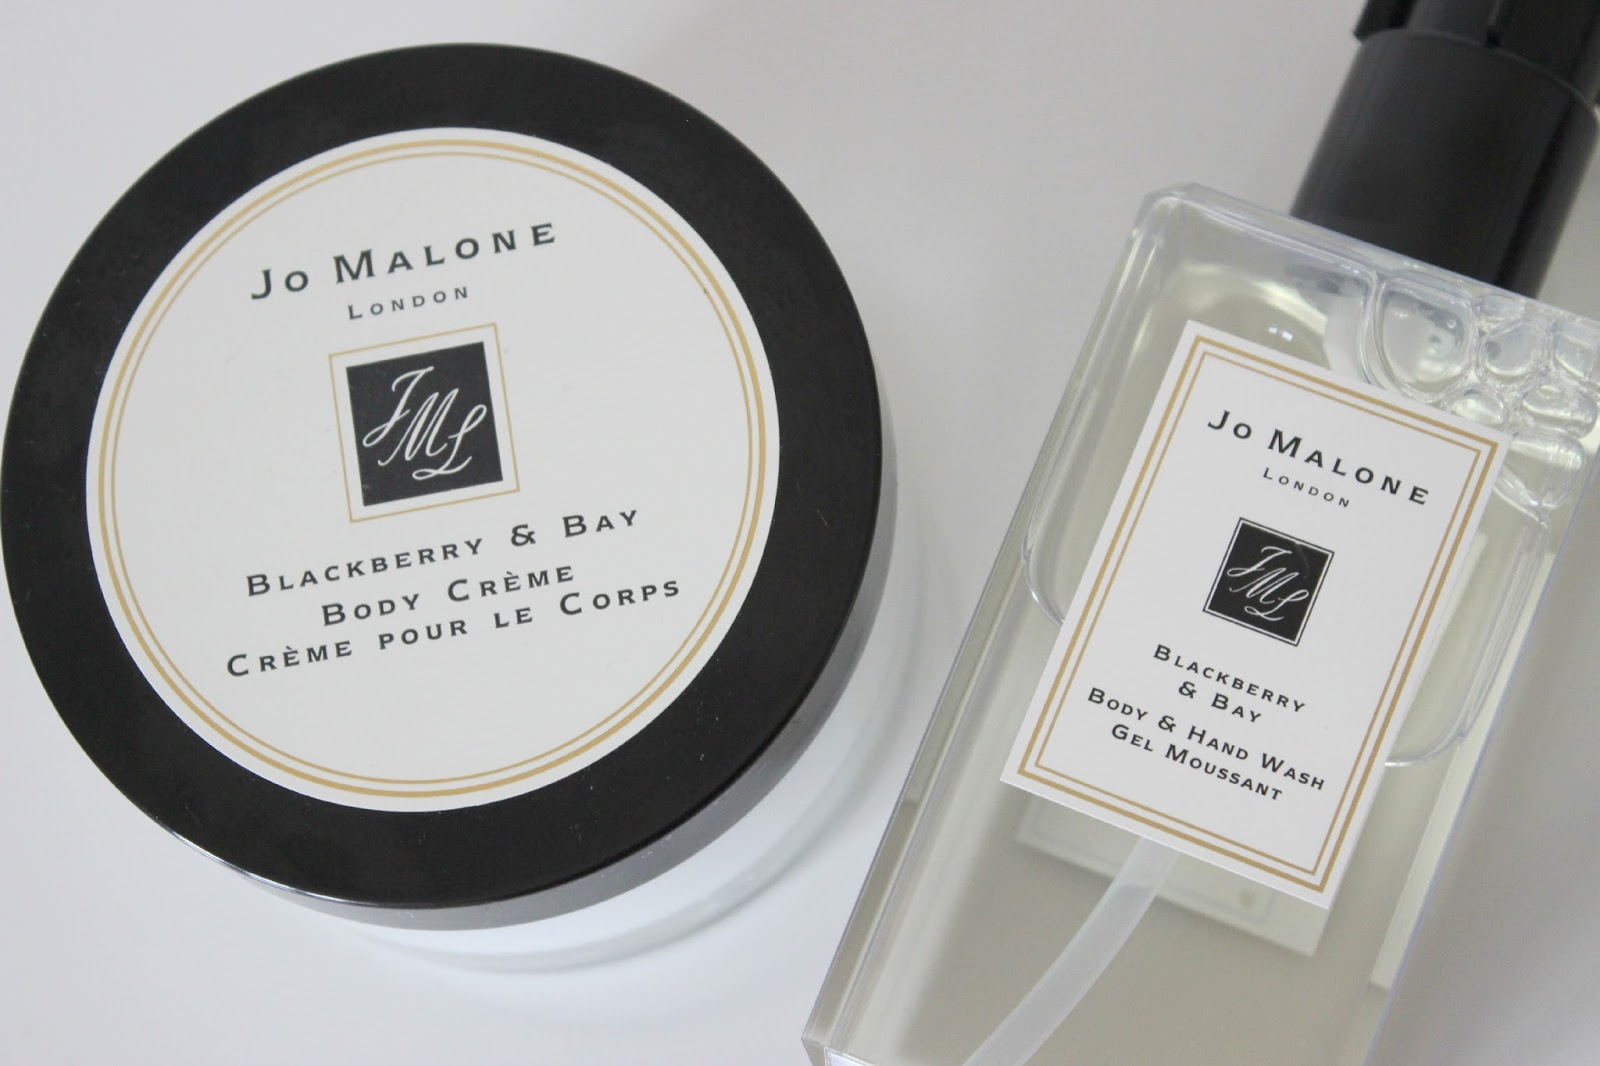 A picture of Jo Malone Blackberry & Bay